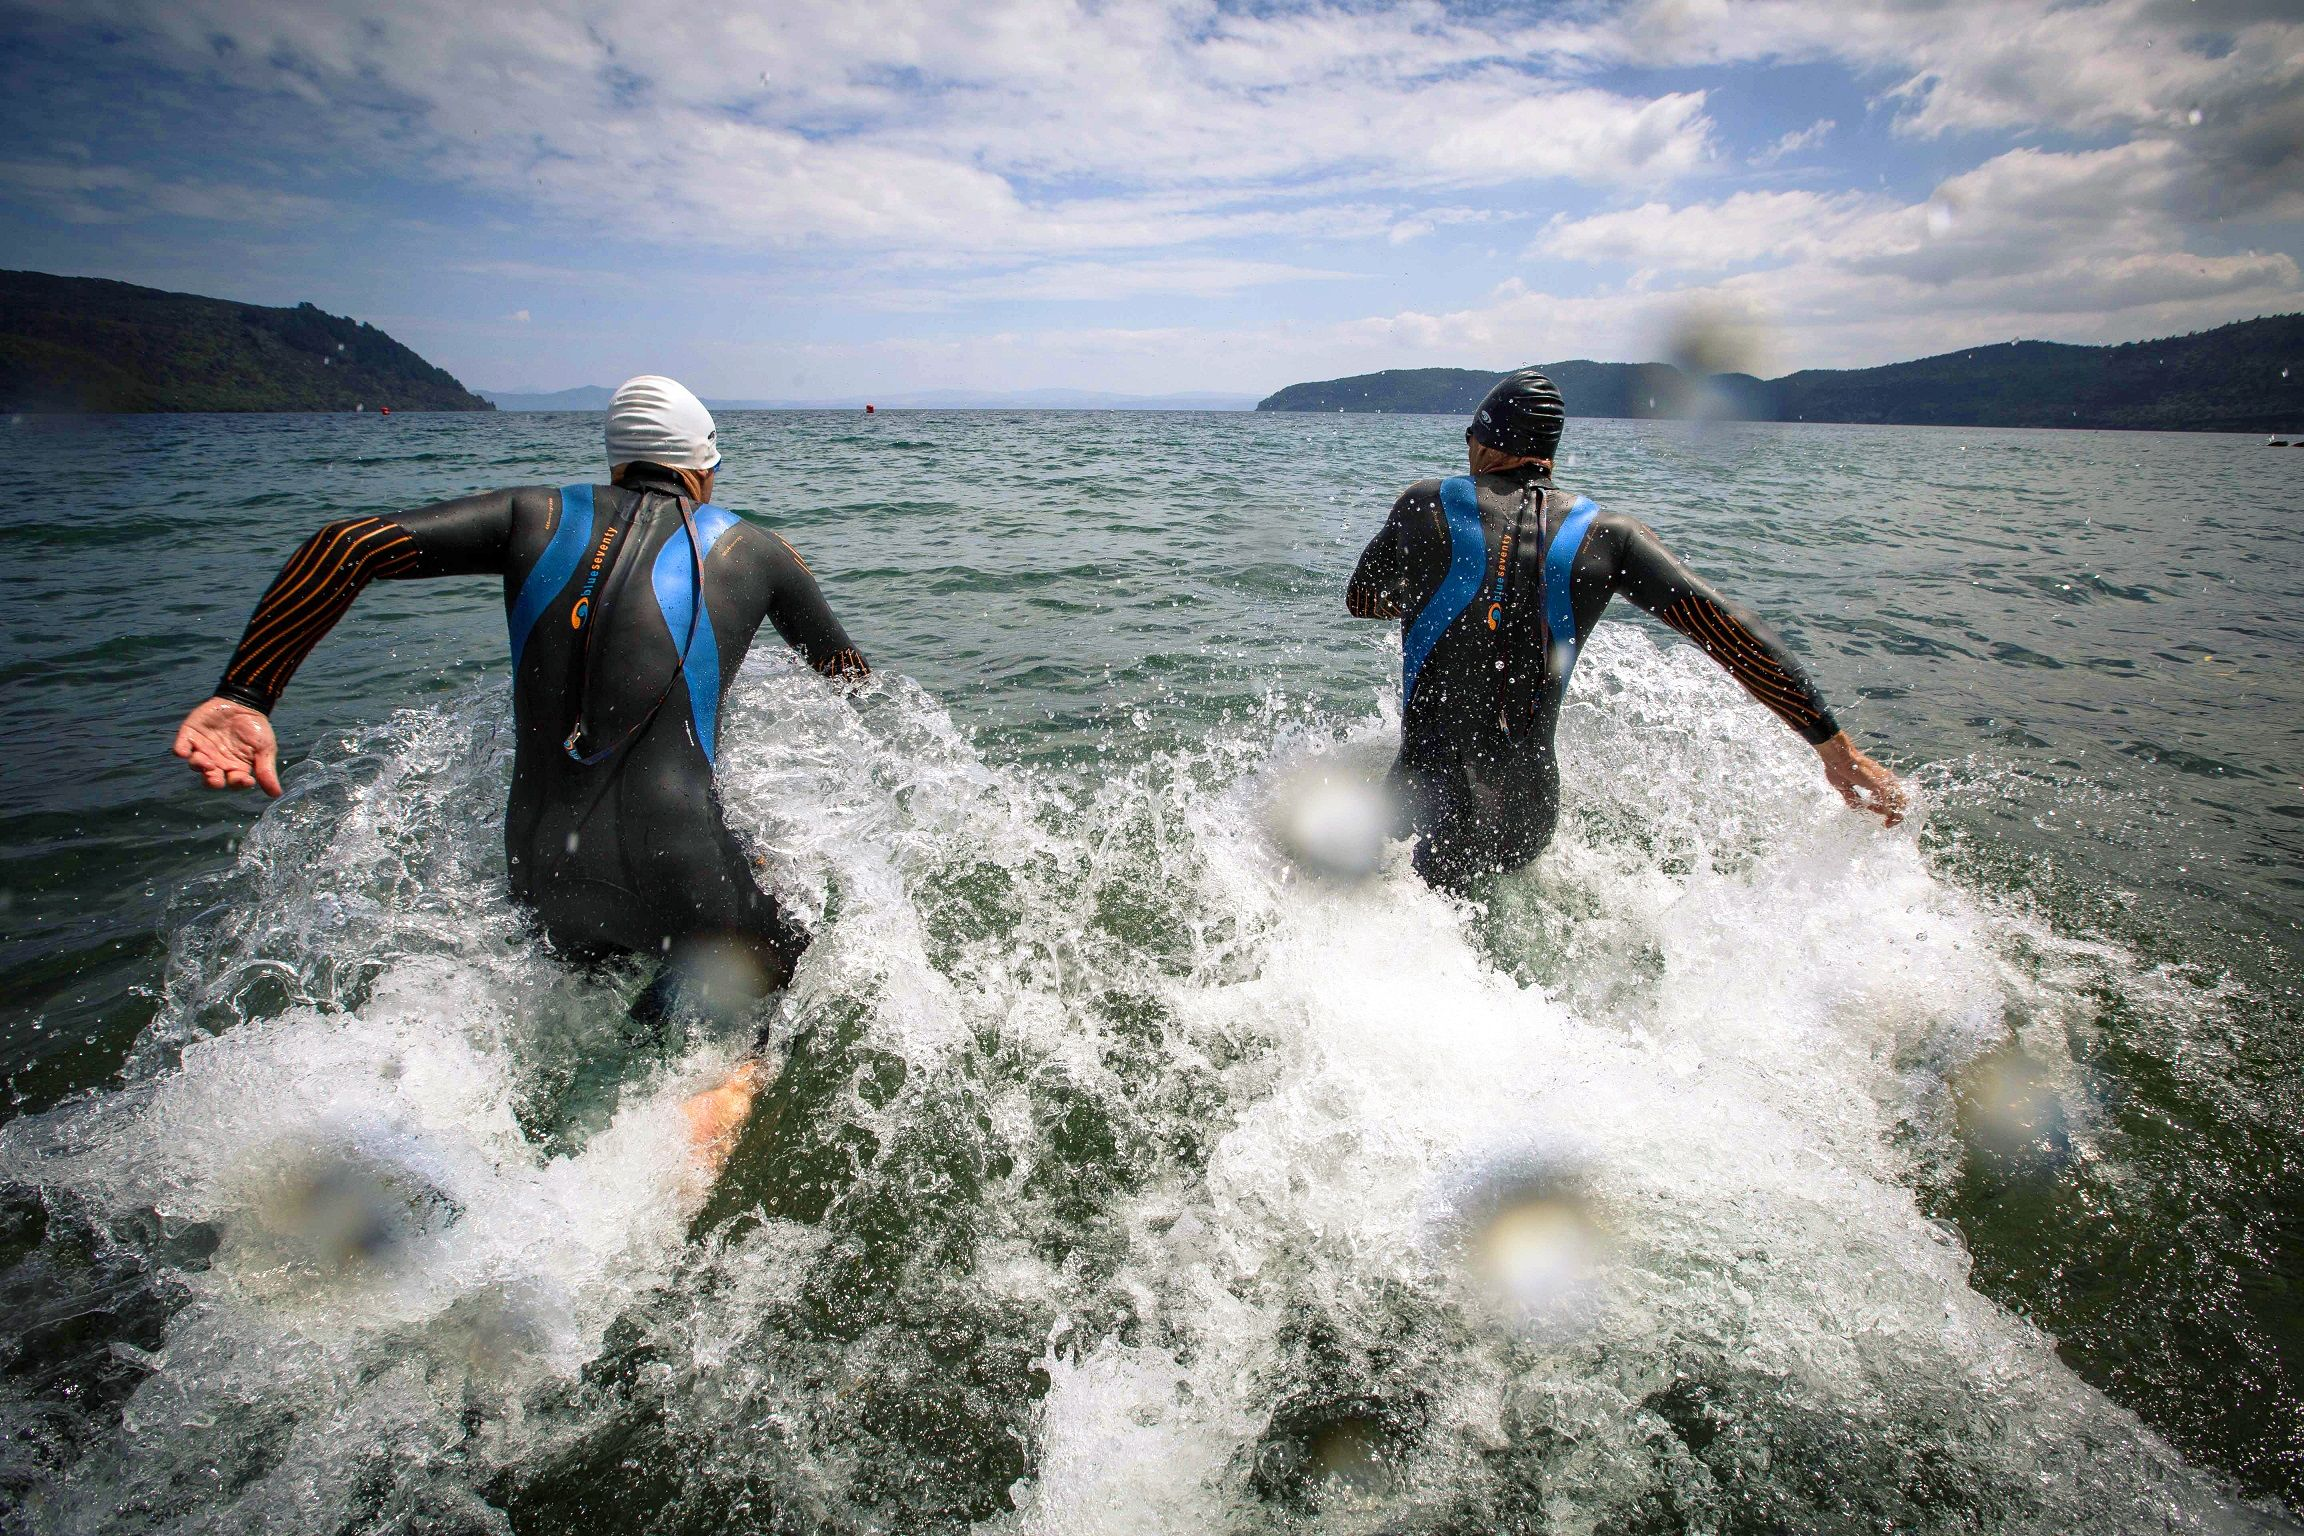 Wetsuit Wearhouse sat down with Triathlete Adam Himmelwright to answer your most frequently asked Triathlon Wetsuit Questions!